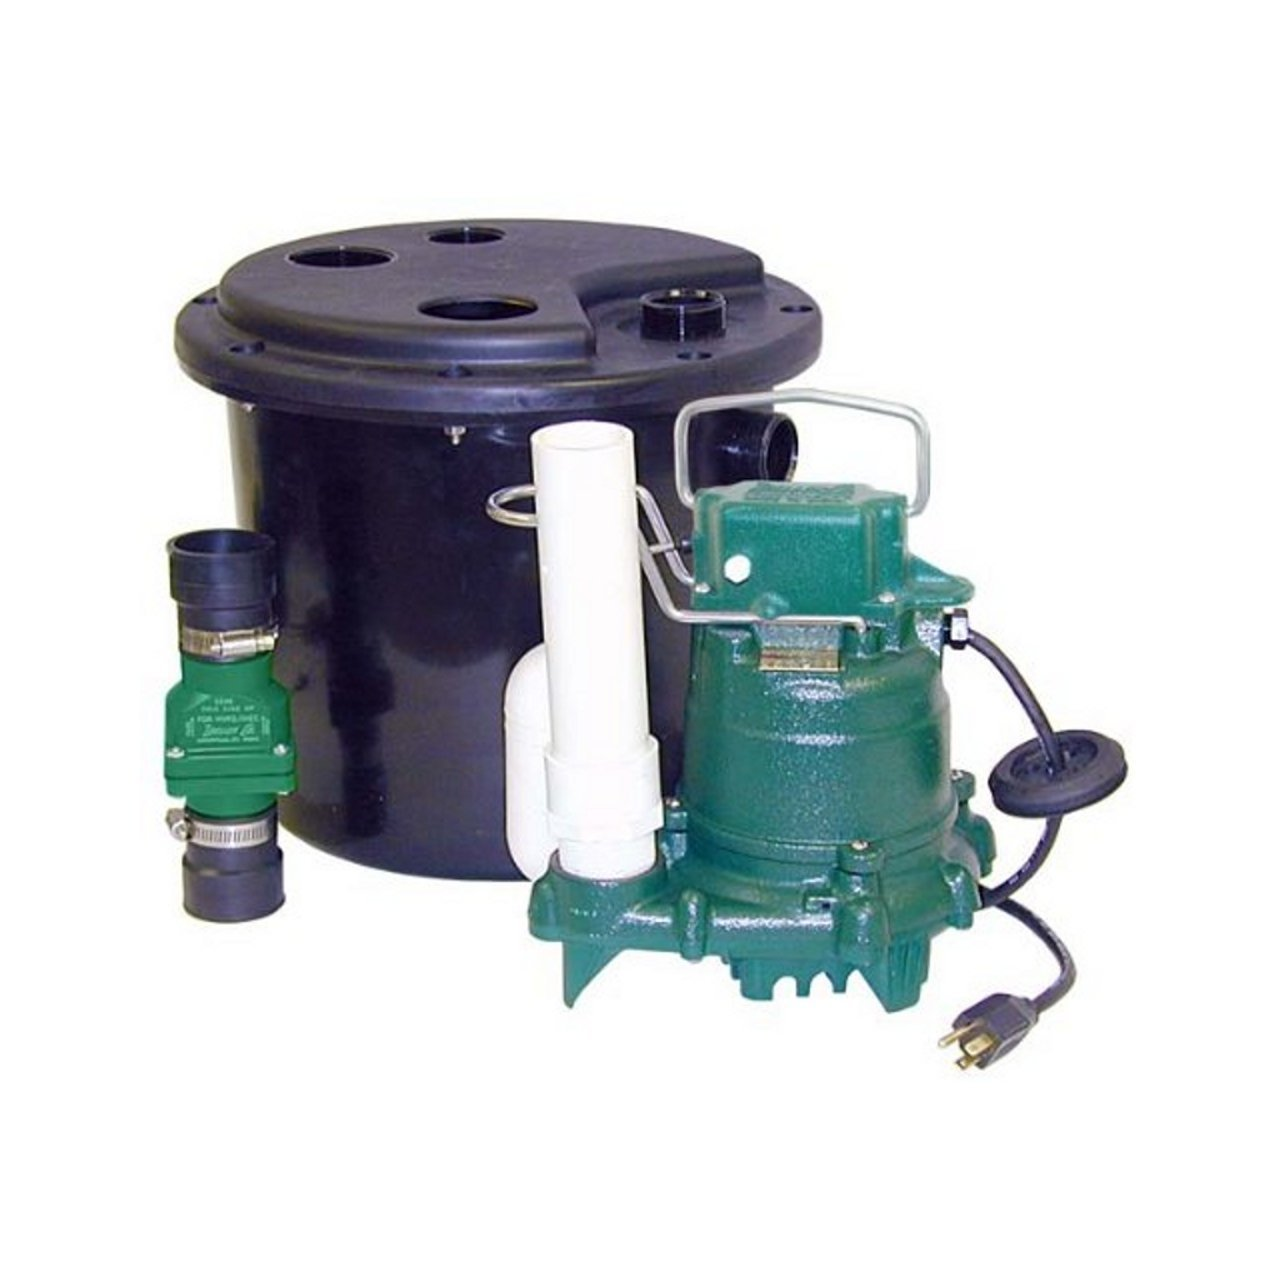 Best Zoeller Sump Pump Reviews 2018 With Comparison Chart